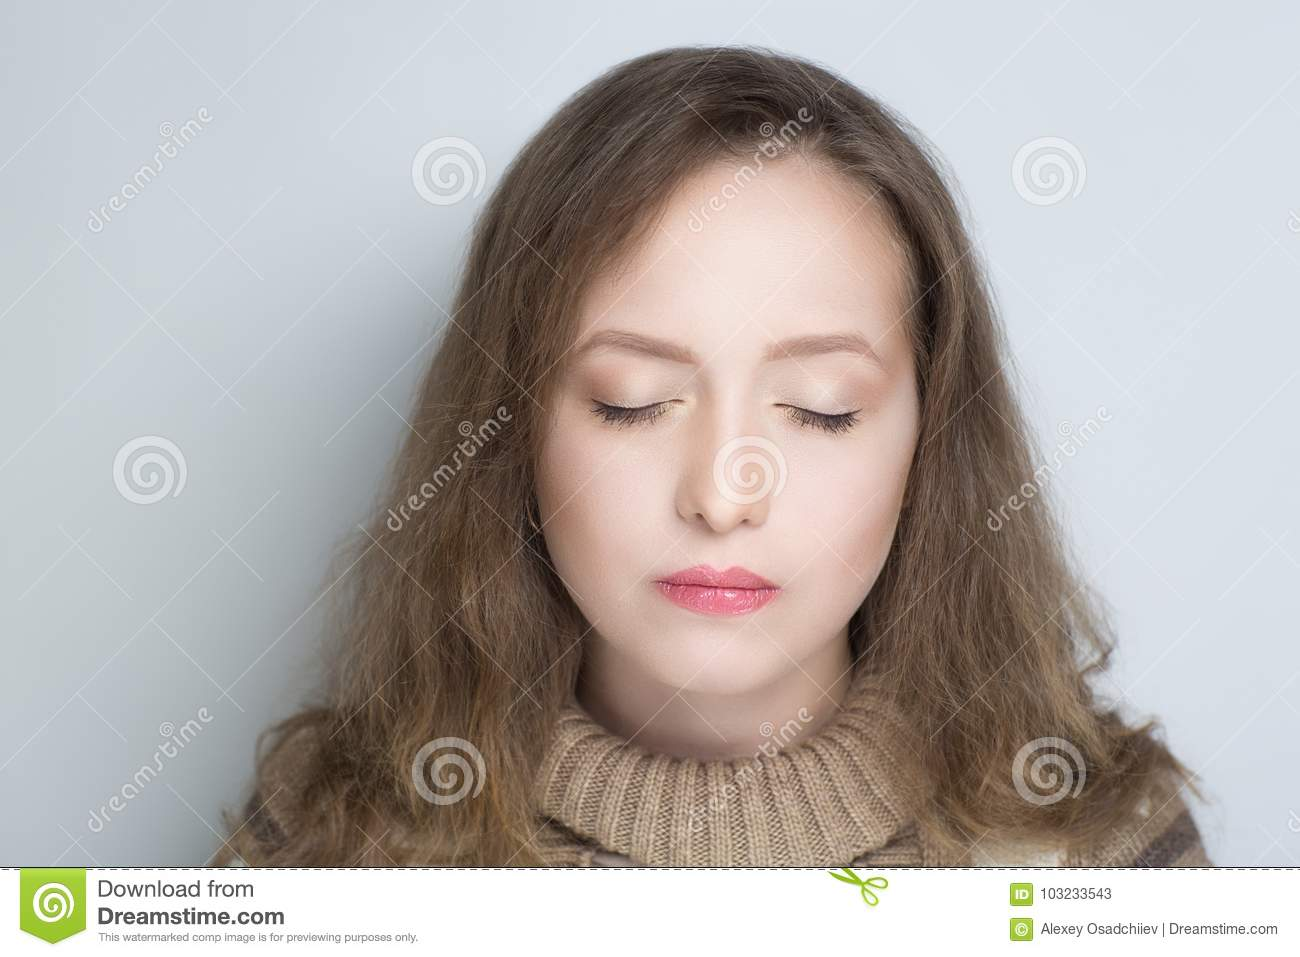 Ugly face woman stock image. Image of lonely, eyes, isolated